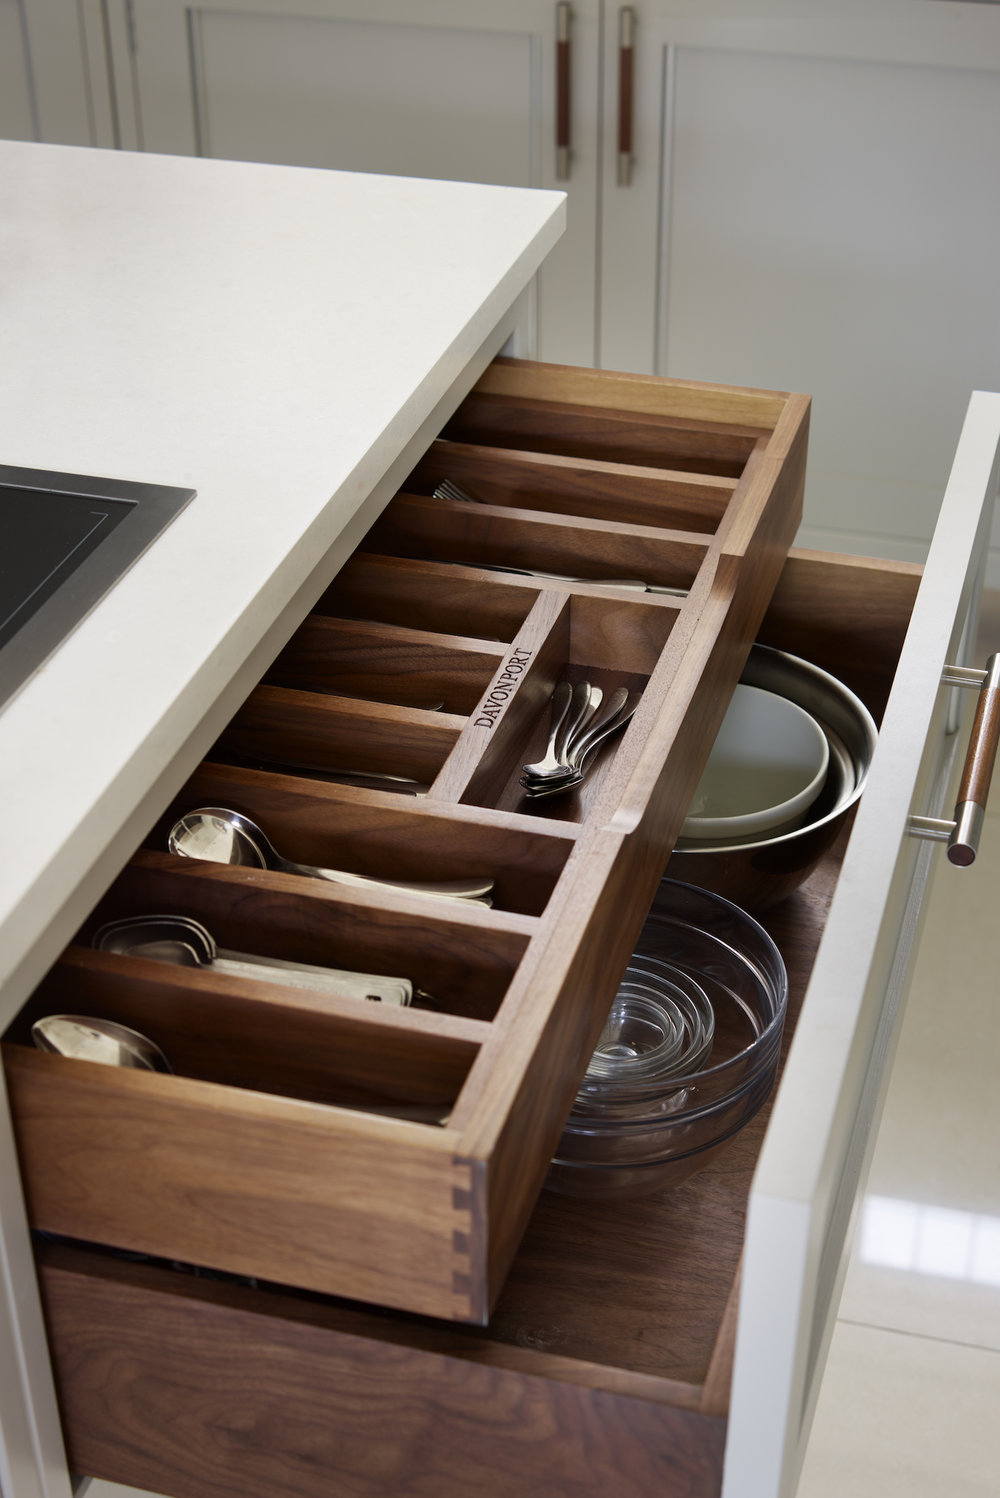 Belgravia-Davonport-Kitchen-Drawers.jpg